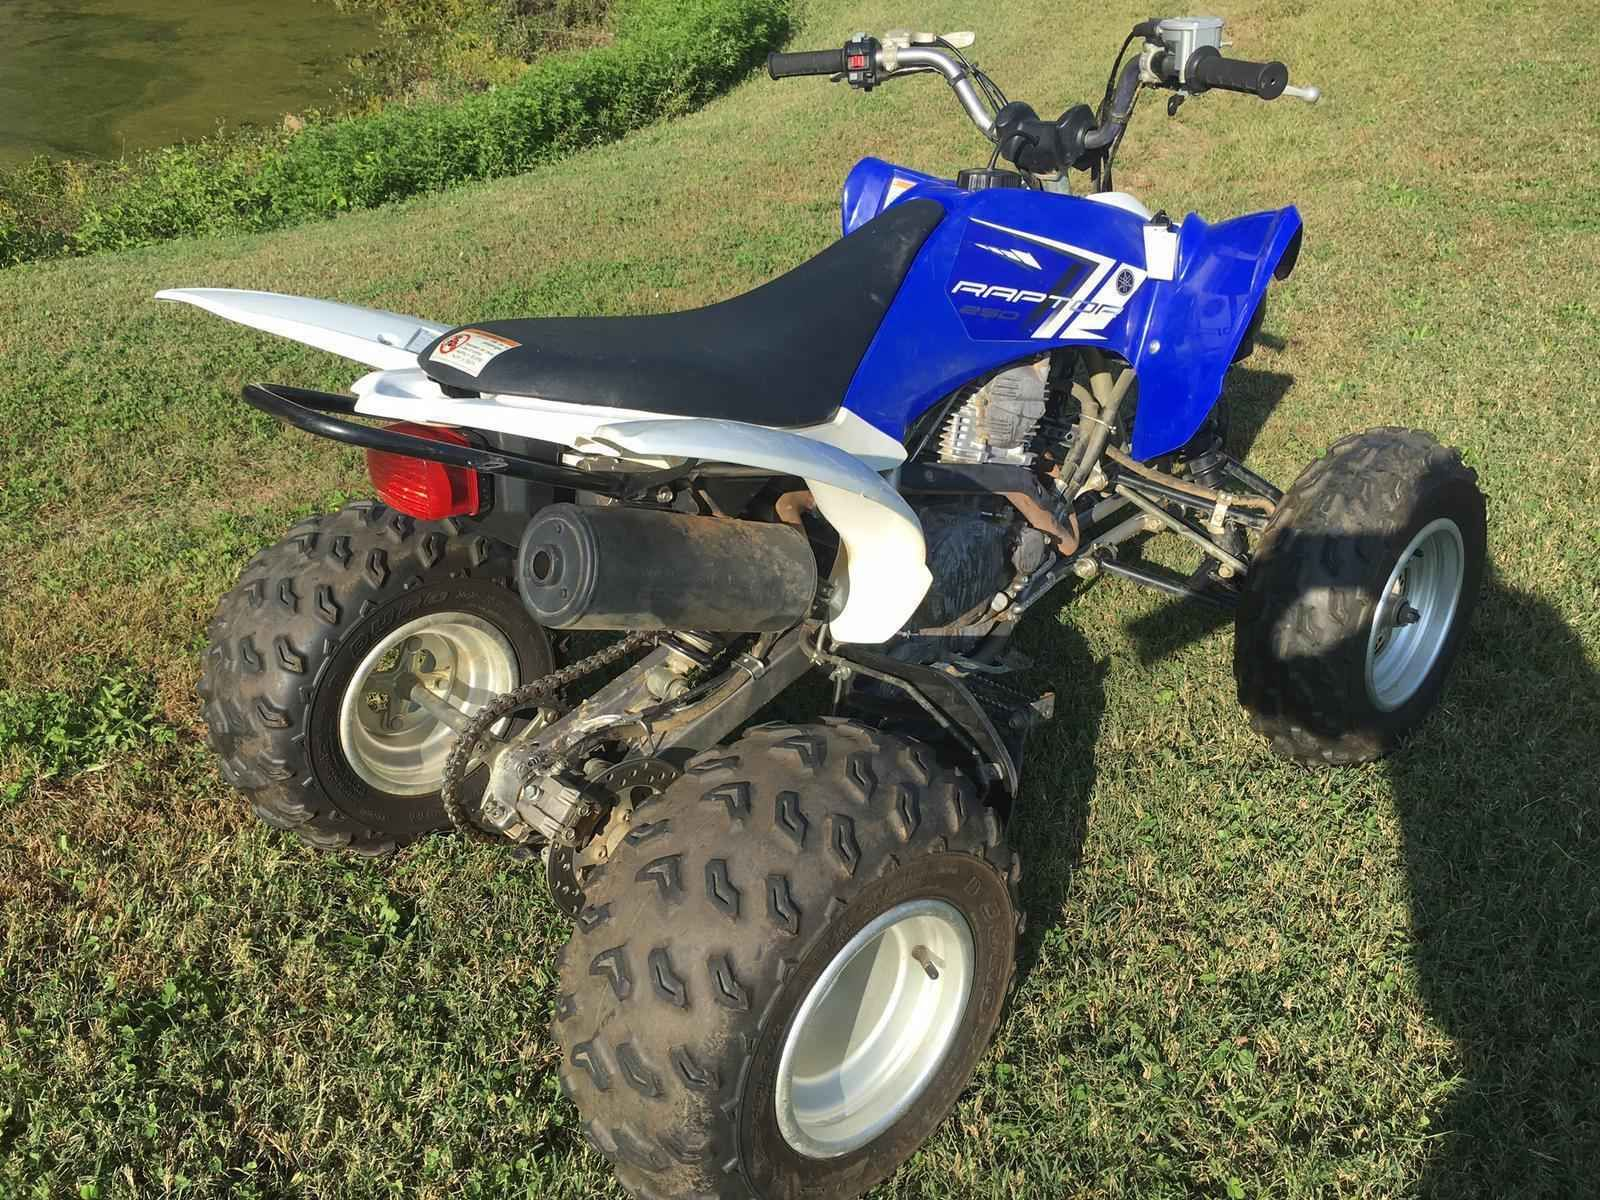 Used 2013 Yamaha Raptor 250 Atvs For Sale In Indiana 2013 Yamaha